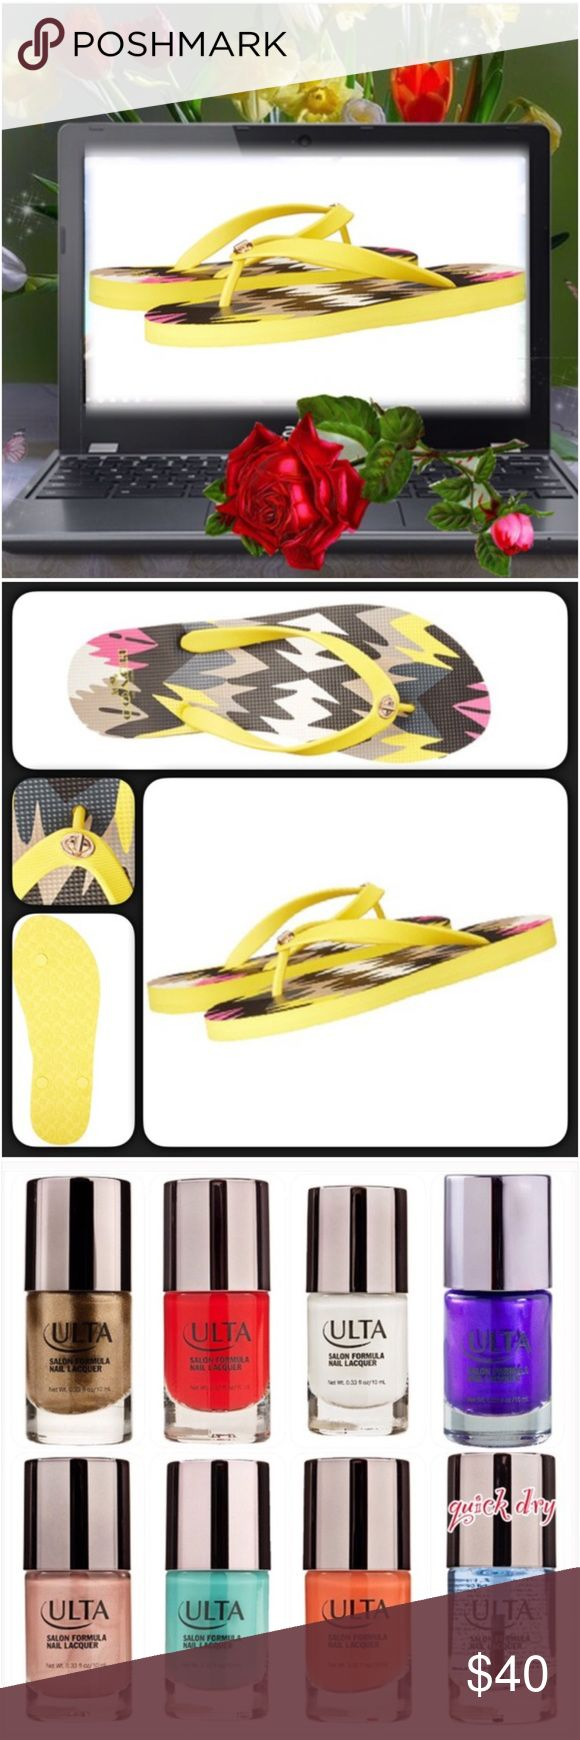 Coach Alessa 💞Super Cute, Super Coach💞 A bold geometric print; Yellow Hawk Feather in color; cushy rubber sole; distinctive hardware inspired by the iconic Coach turnlock; printed rubber 🎁One full-size (0.33 oz.) Ulta Salon Formula Nail Lacquer included w/purchase. Eye-It...Buy-It✌🏾️ Coach Shoes Sandals